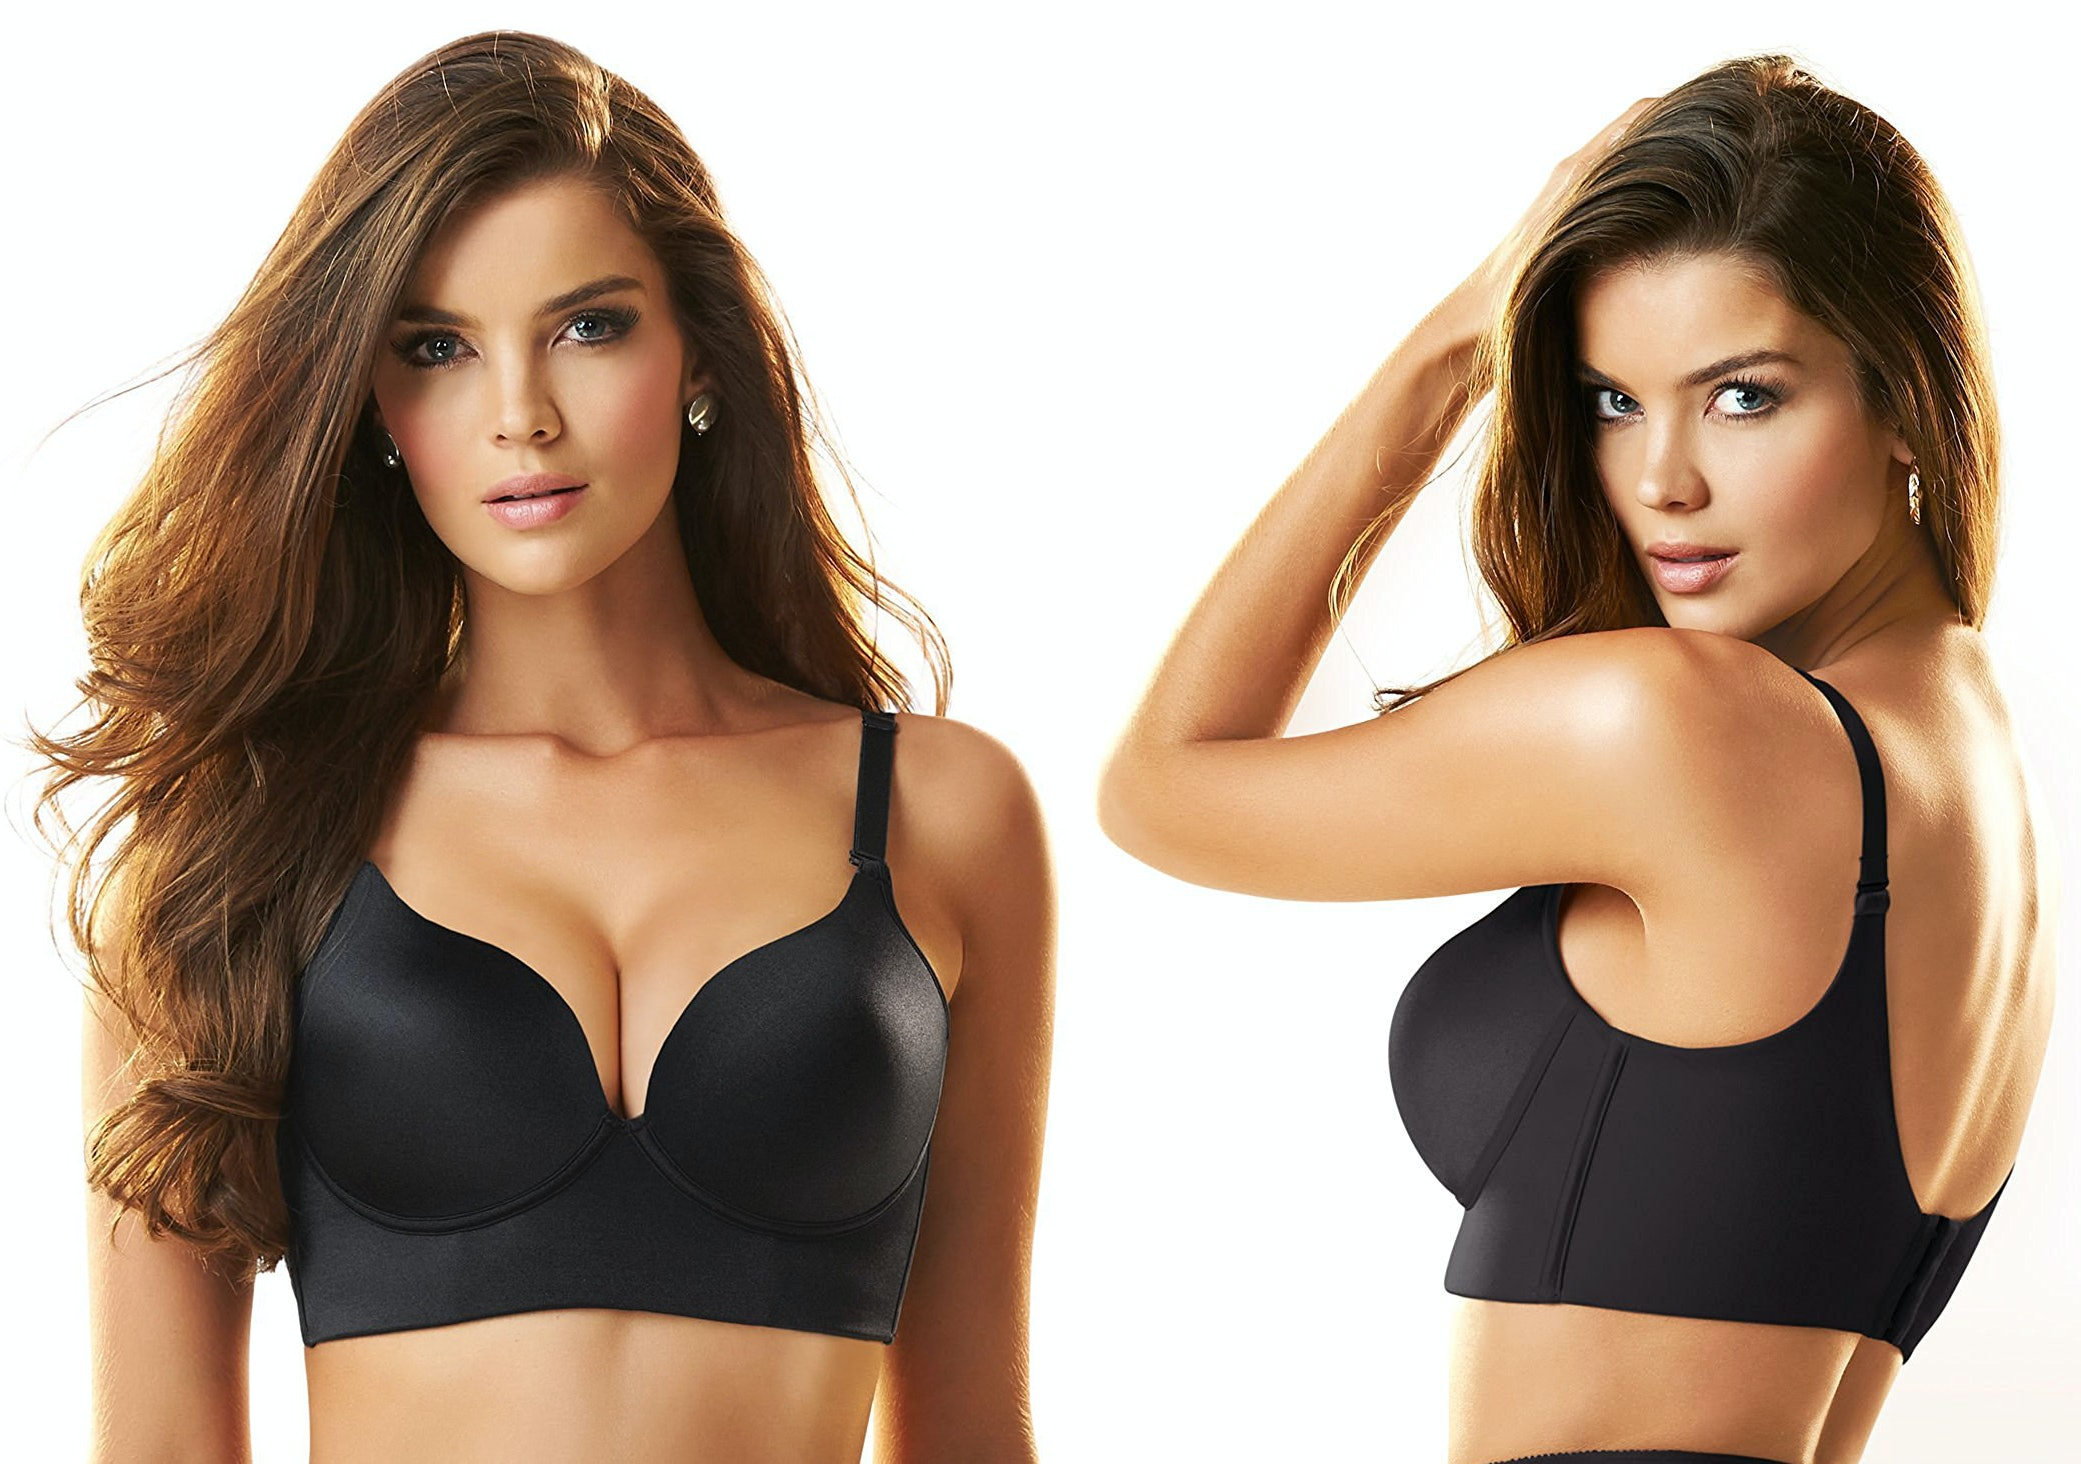 a298ba63c8fb2 The 8 Best Wireless Push-Up Bras